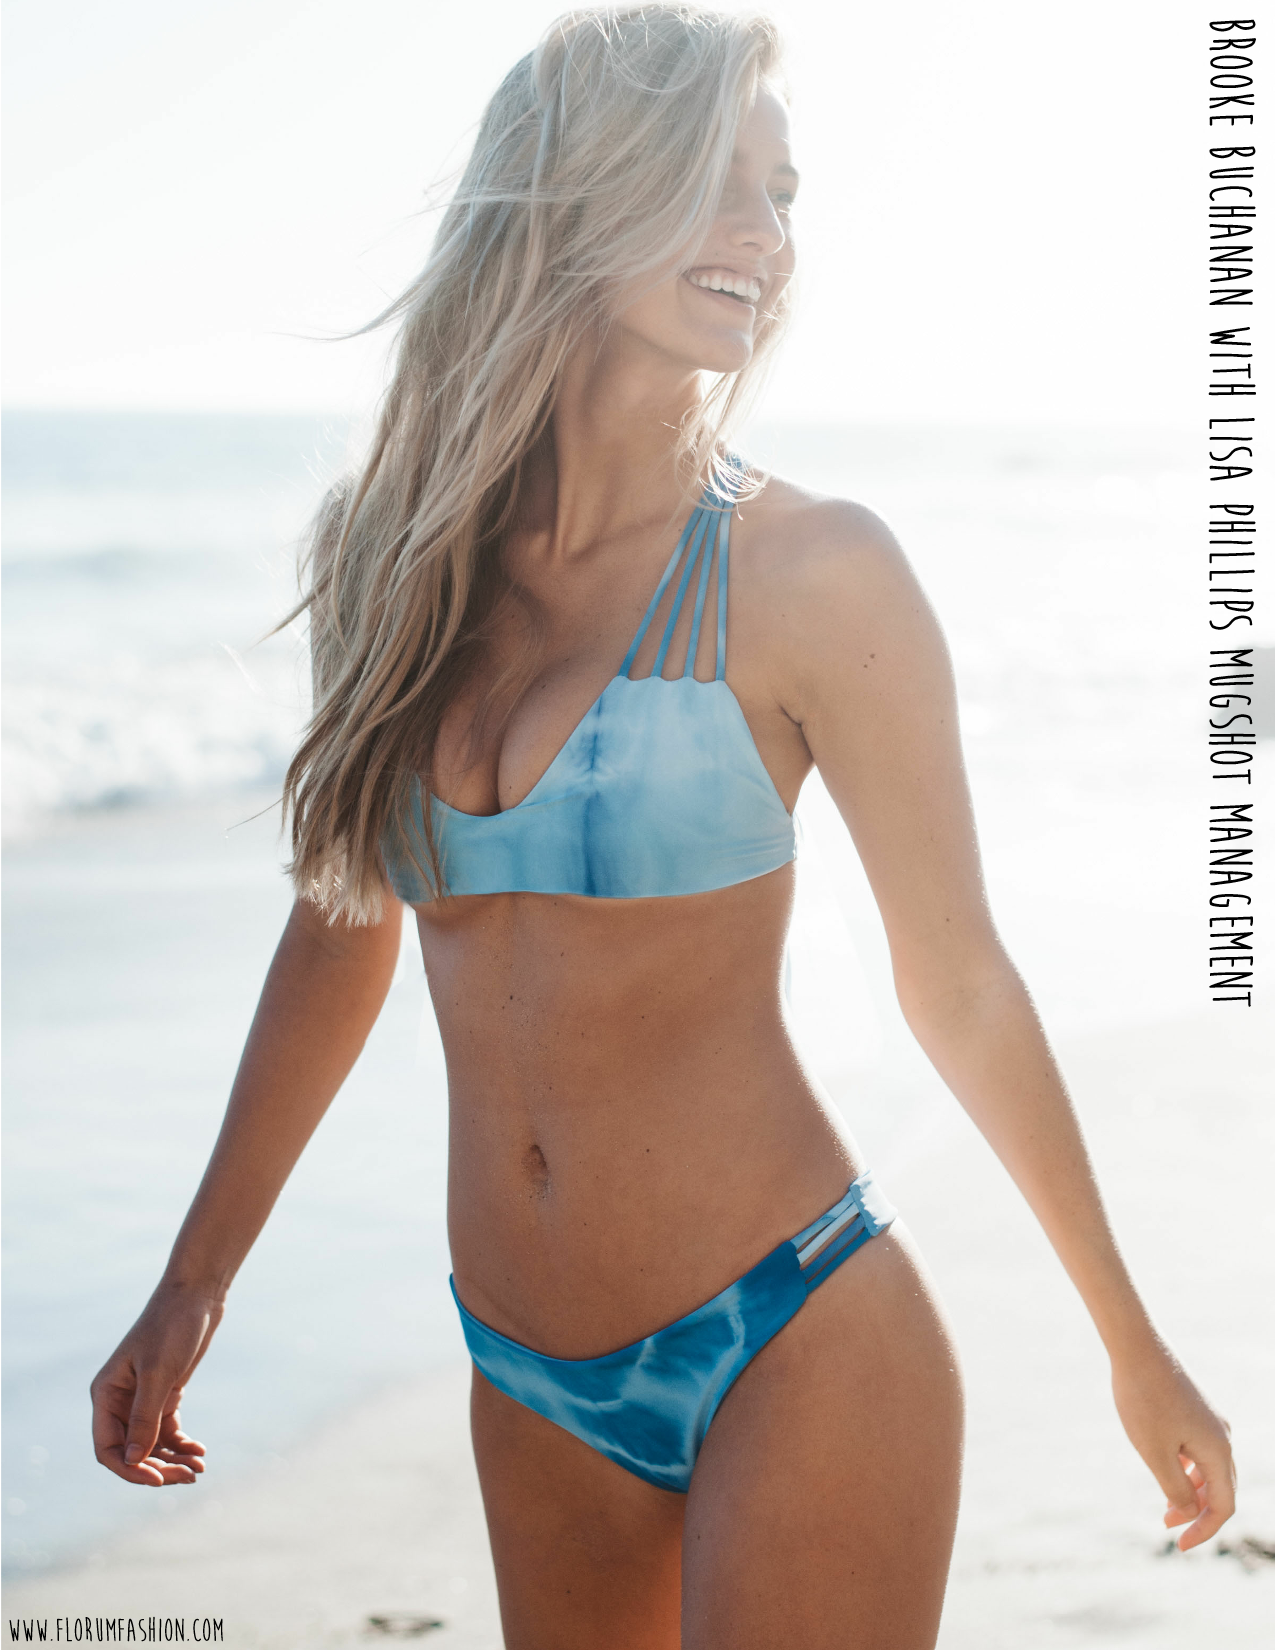 Unike Reversible Green Swimwear Brand - Florum Fashion Magazine - Stephen Sun - Brooke Buchanan - Slow Fashion Movement - Sustainable